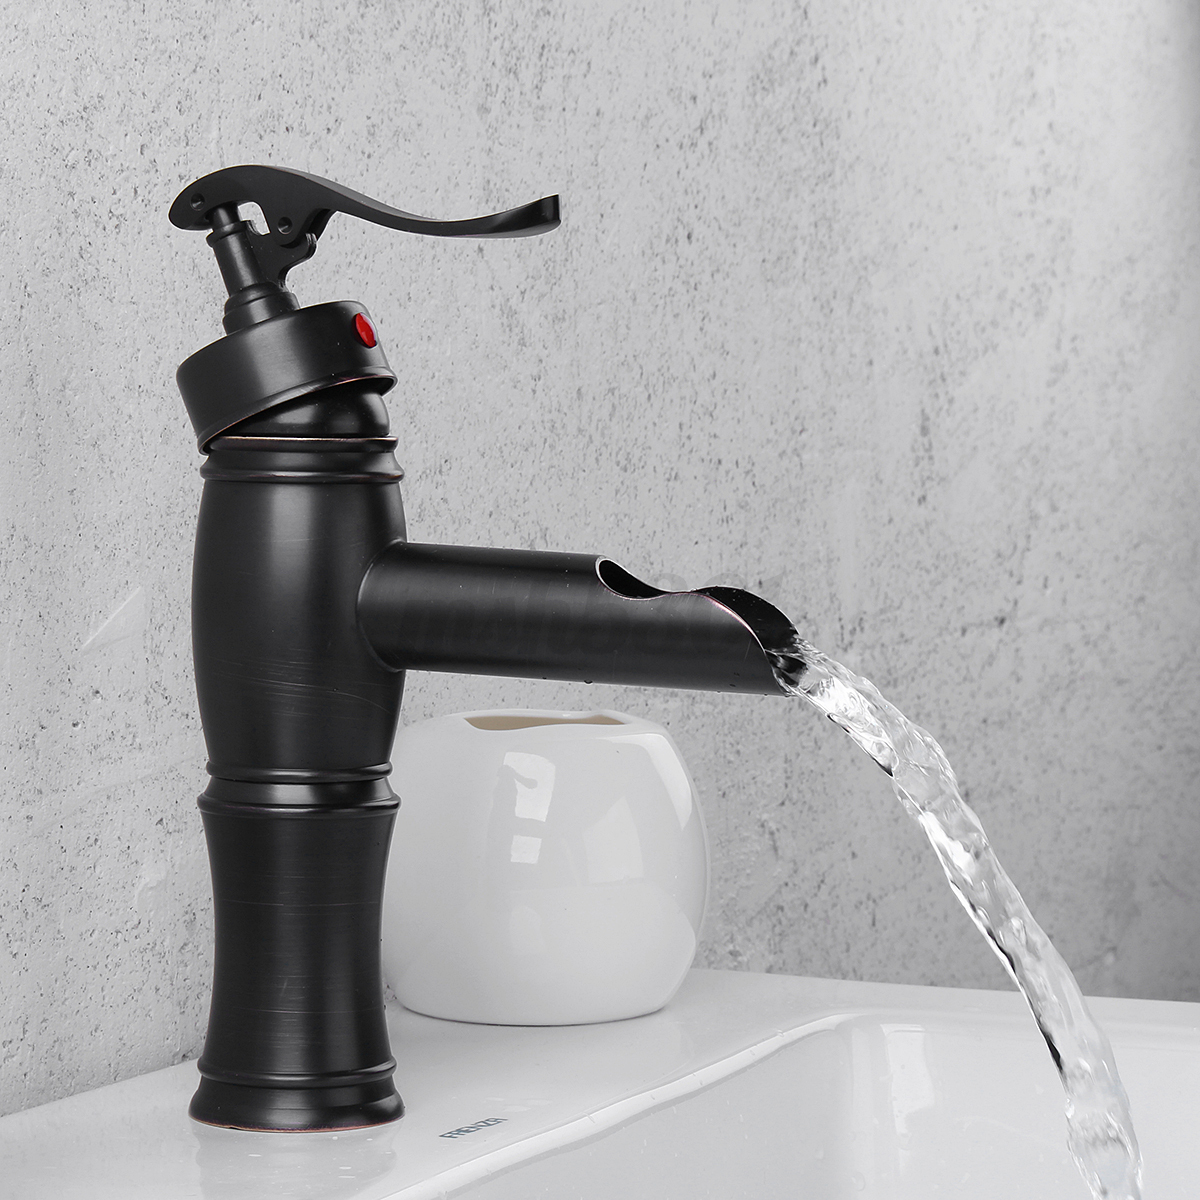 oil rubbed bronze kitchen faucets build your own outdoor island bathroom sink vessel faucet